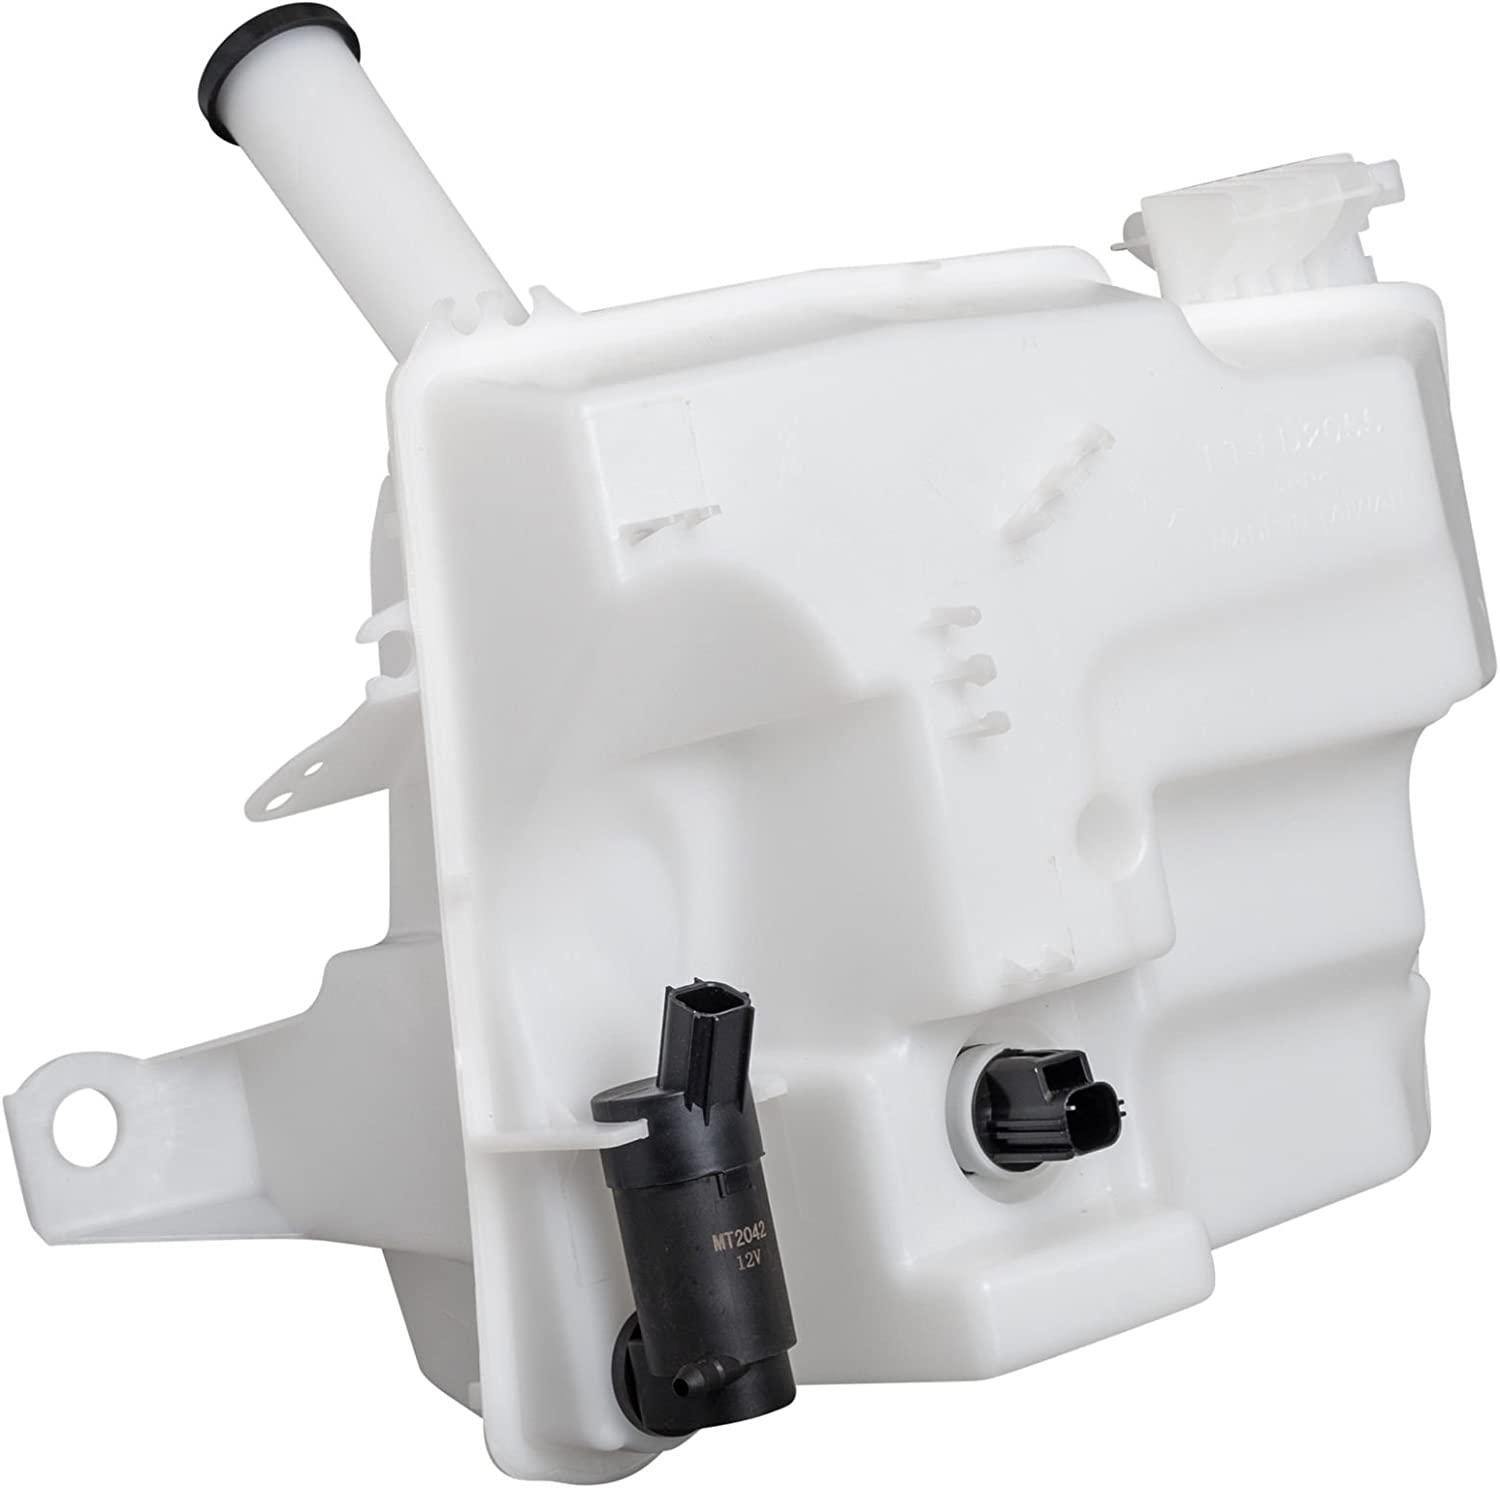 New Windshield Washer Tank With Pump For 2012-2018 Ford Focus And Ford Focus Electric Fits Hatchback Models With Sensor And Filler Tube FO1288112